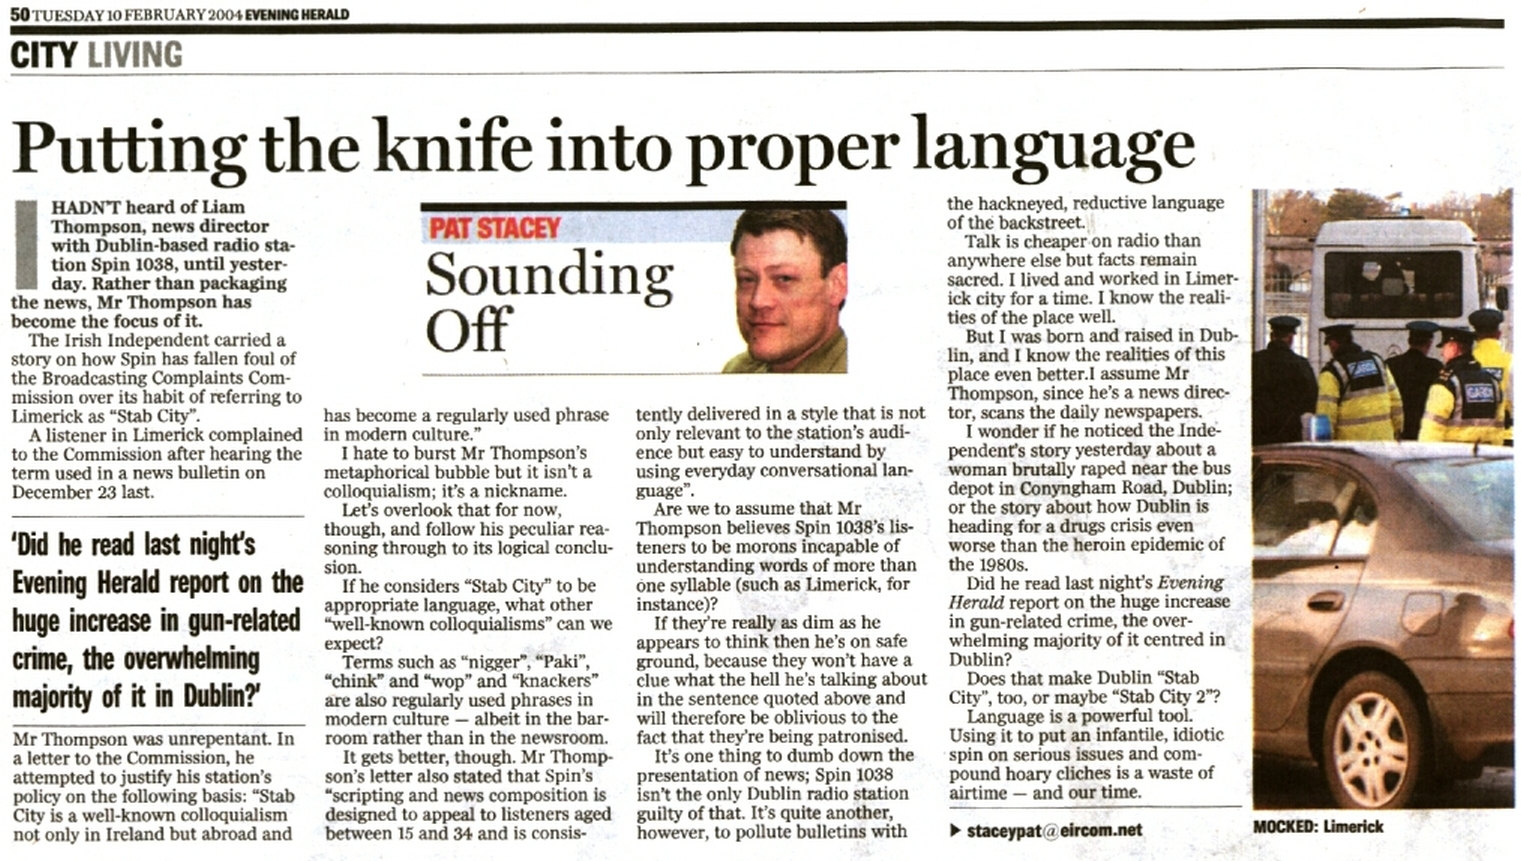 Evening Herald - Putting the knife into proper language